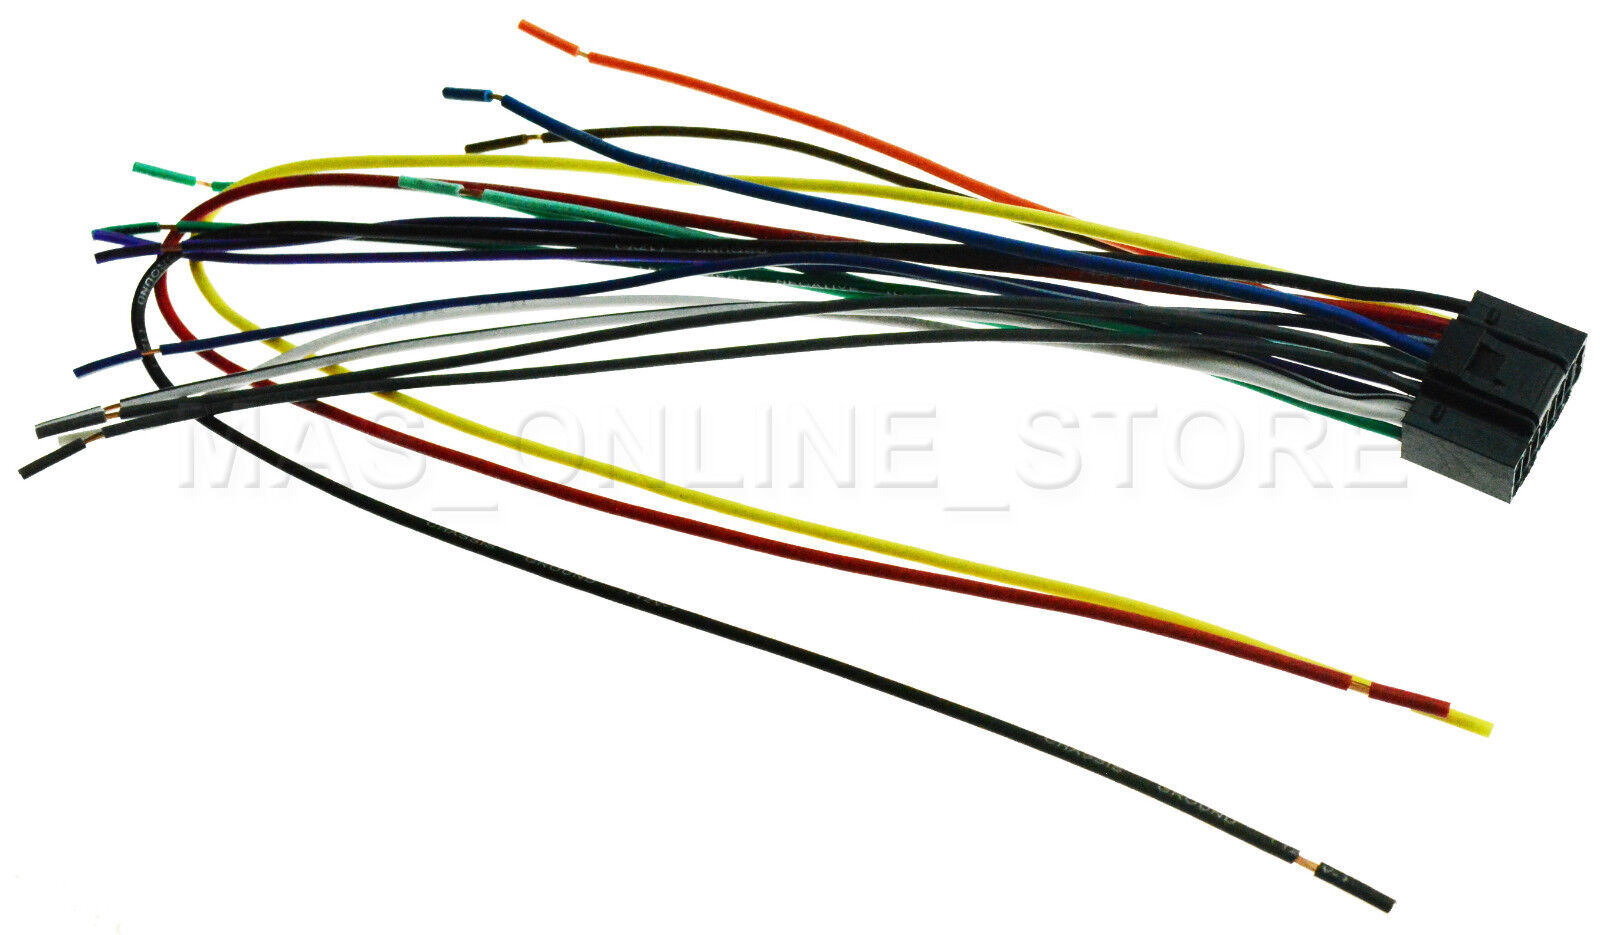 Wire Harness for Kenwood Ddx-393 Ddx393 Ddx-593 Ddx593 *pay Today Ships on kenwood 16 pin wiring harness, kenwood dnx wiring, kenwood model kdc wiring-diagram, kenwood wiring harness colors, bellsouth complete hook up wiring diagram, kenwood dnx6180 wiring-diagram, kenwood dnx6190hd wiring-diagram,